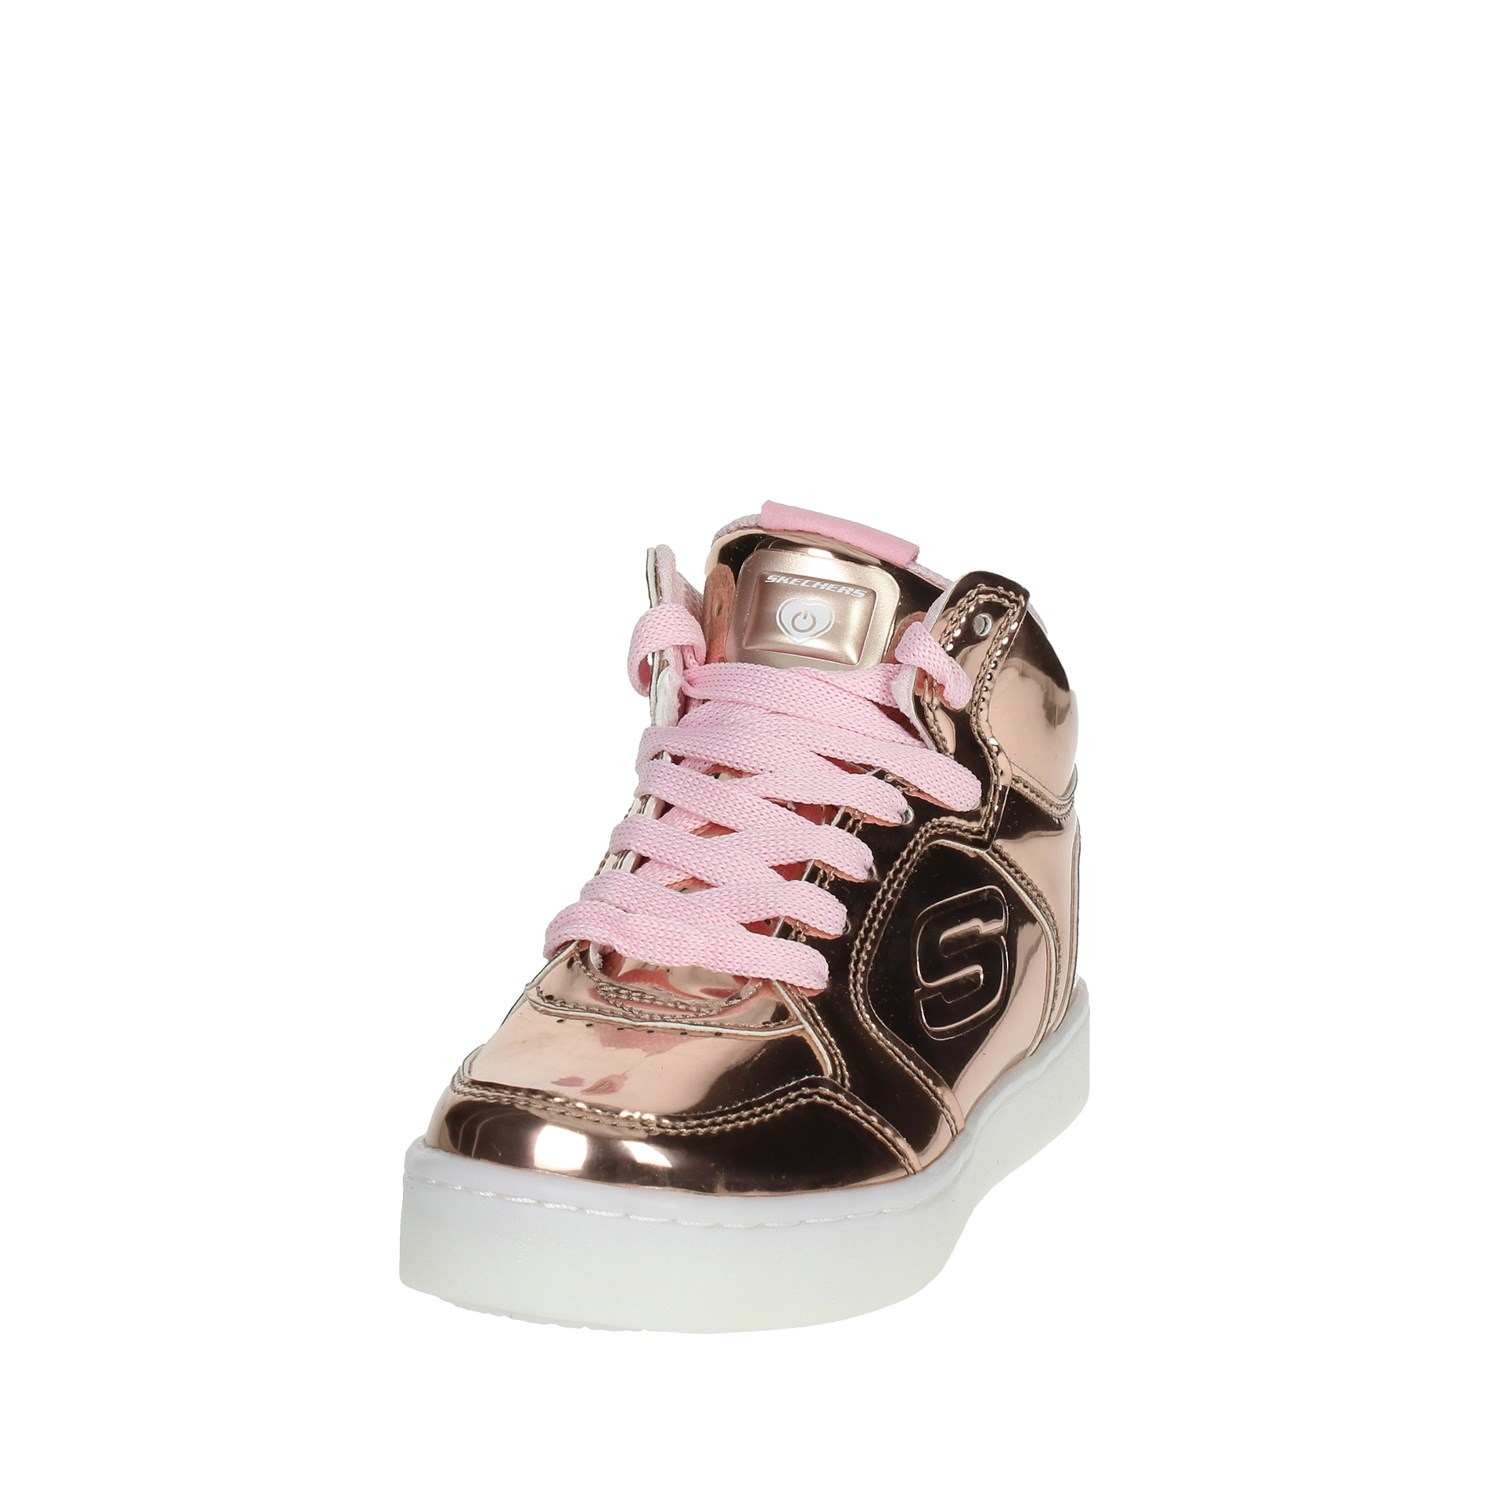 Skechers 10771L/RSGD Sneakers Sneakers 10771L/RSGD Alta Bambina Autunno/Inverno d885ae